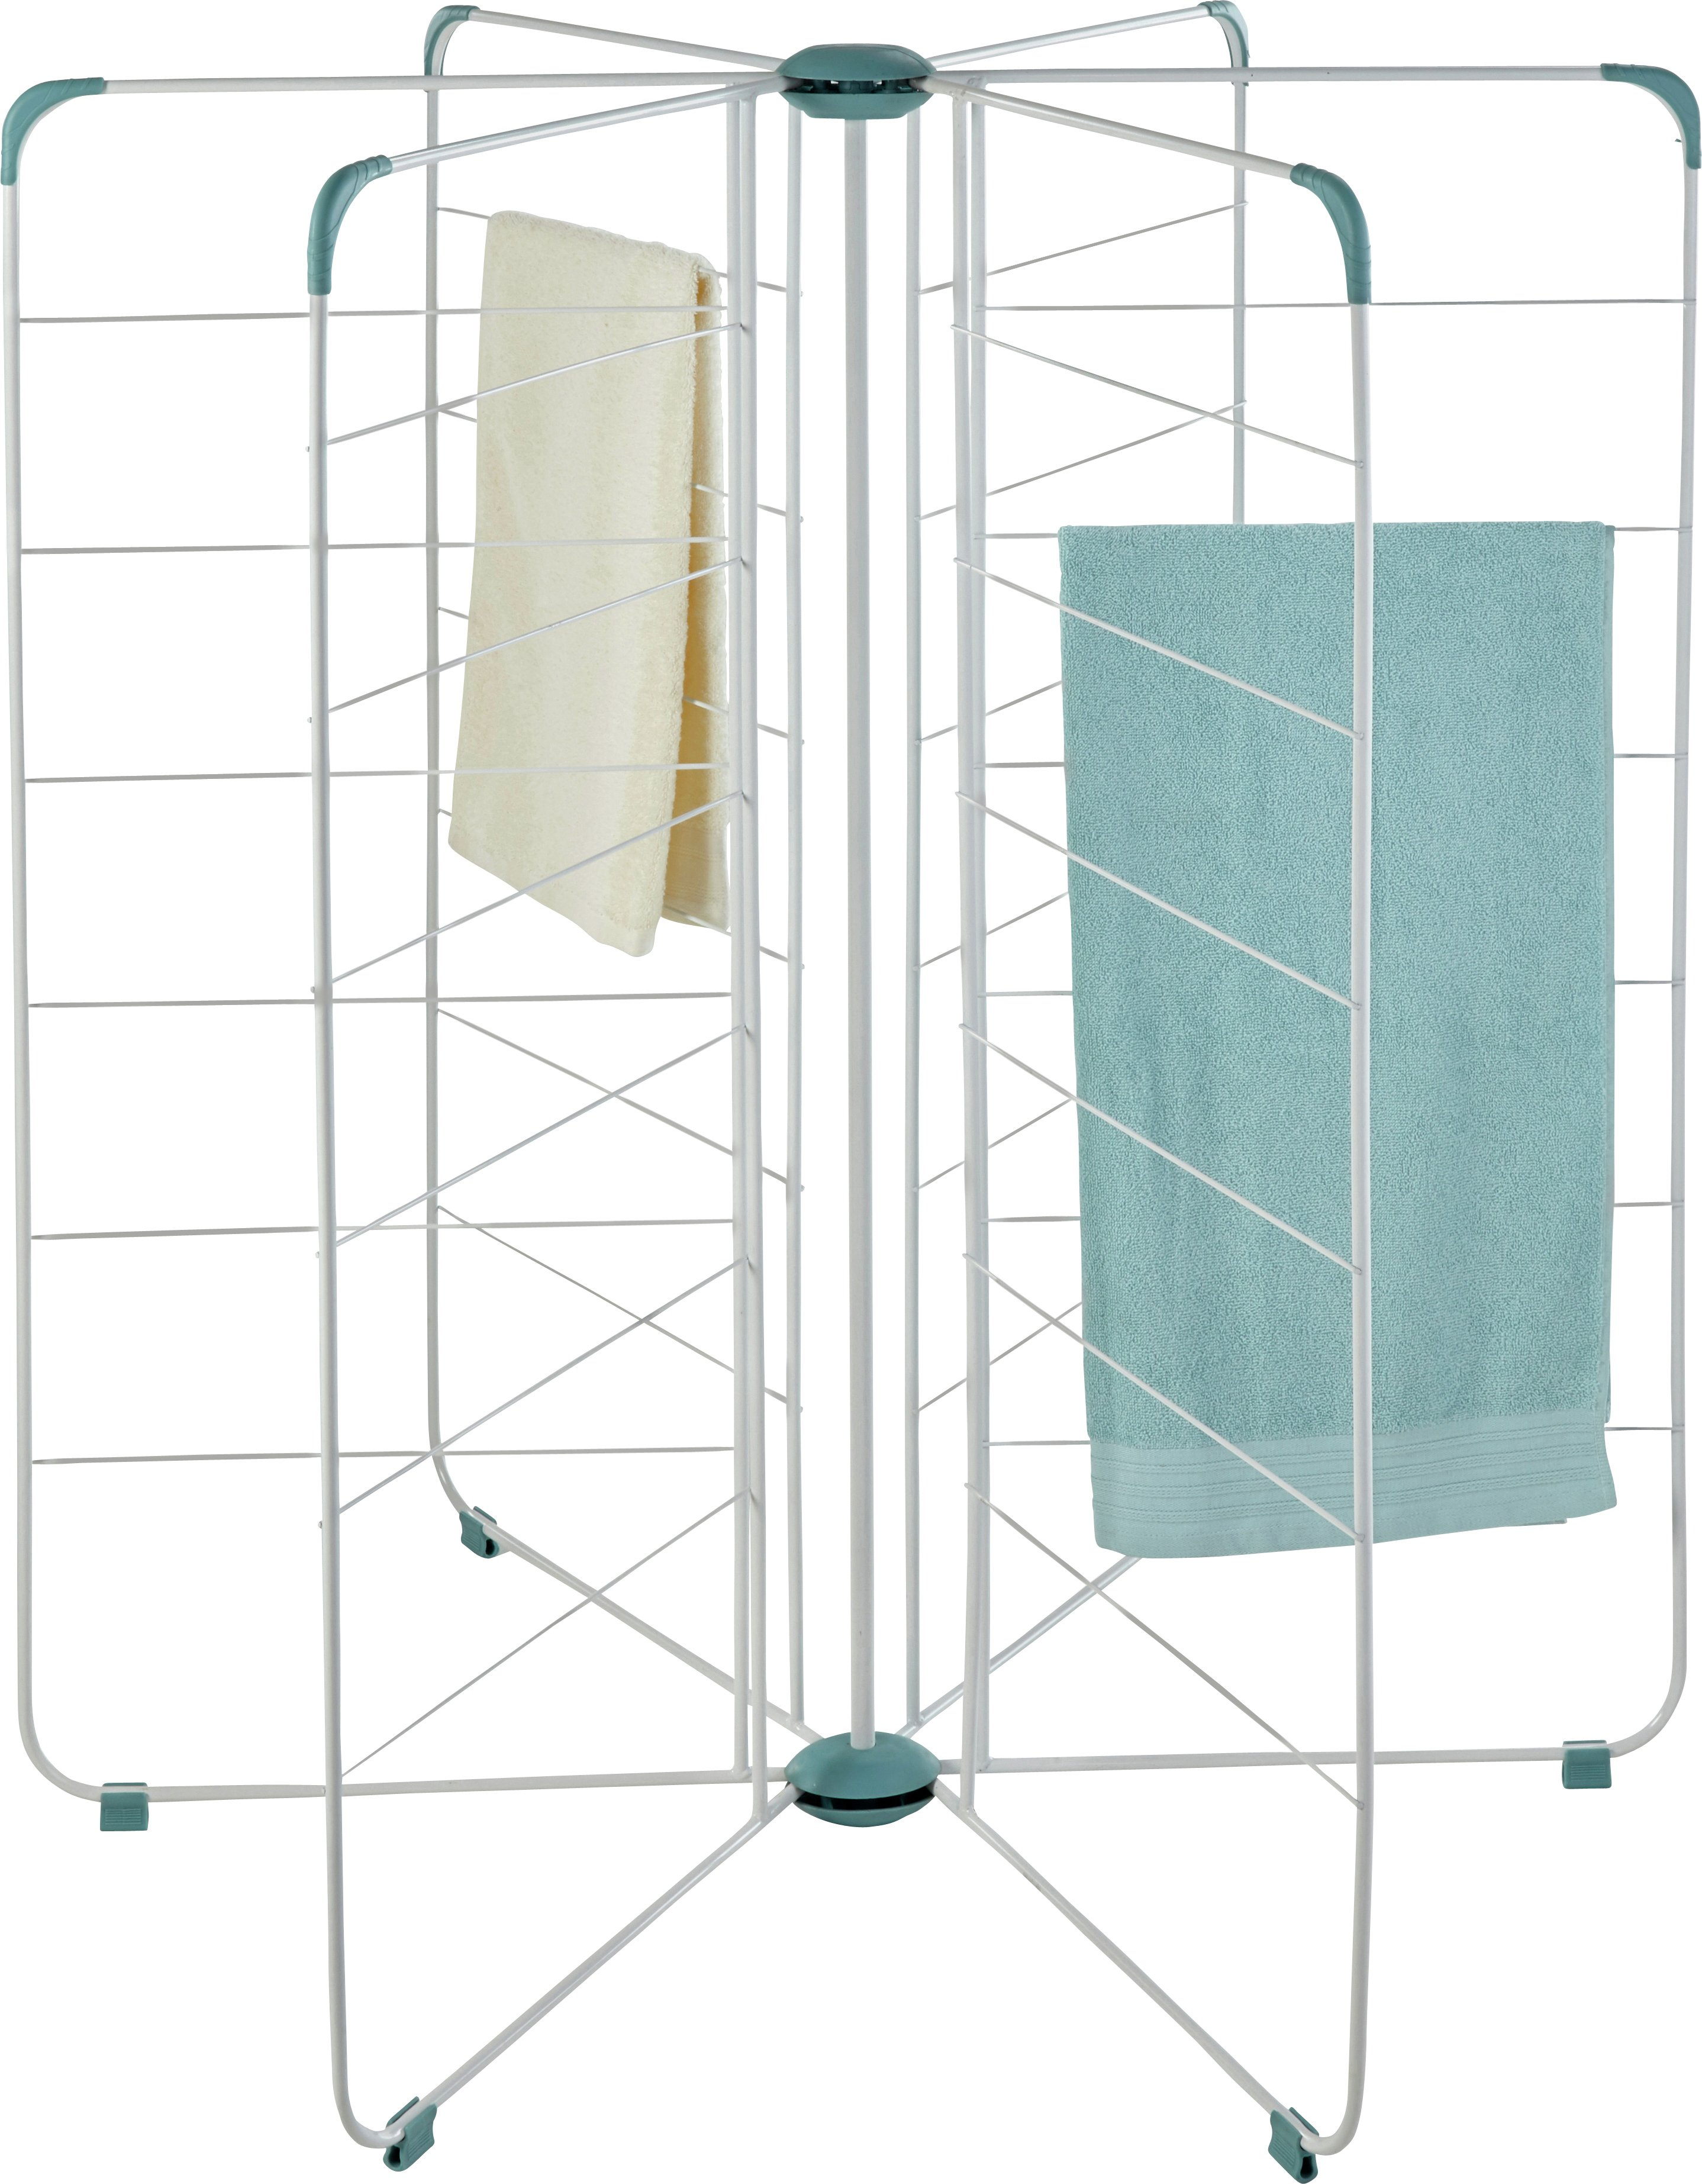 Image of Better Dri 18m Radial Indoor Airer